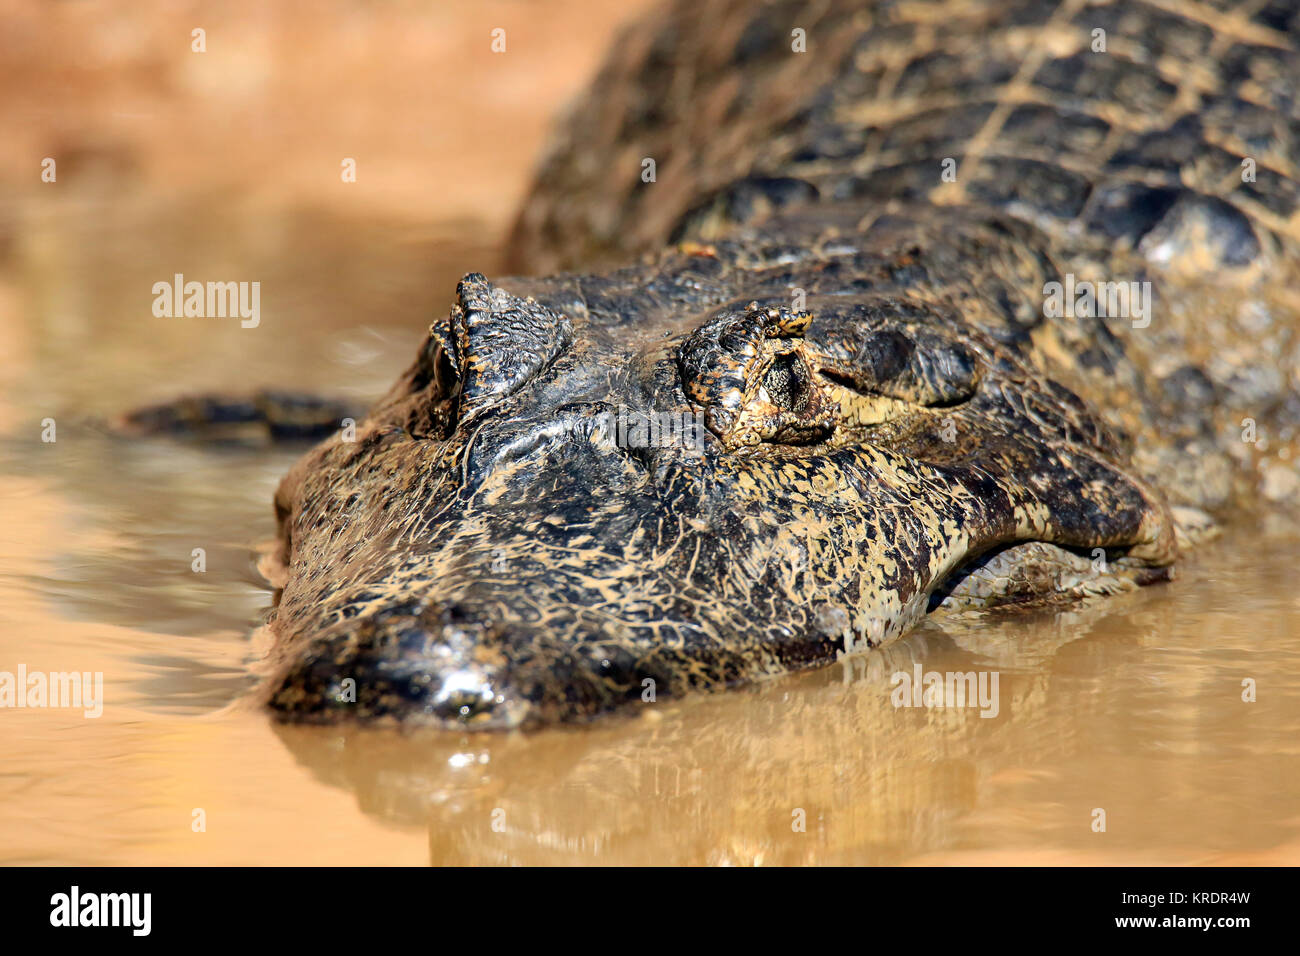 Close-up of a Spectacled Caiman in Water. Rio Claro, Pantanal, Brazil - Stock Image